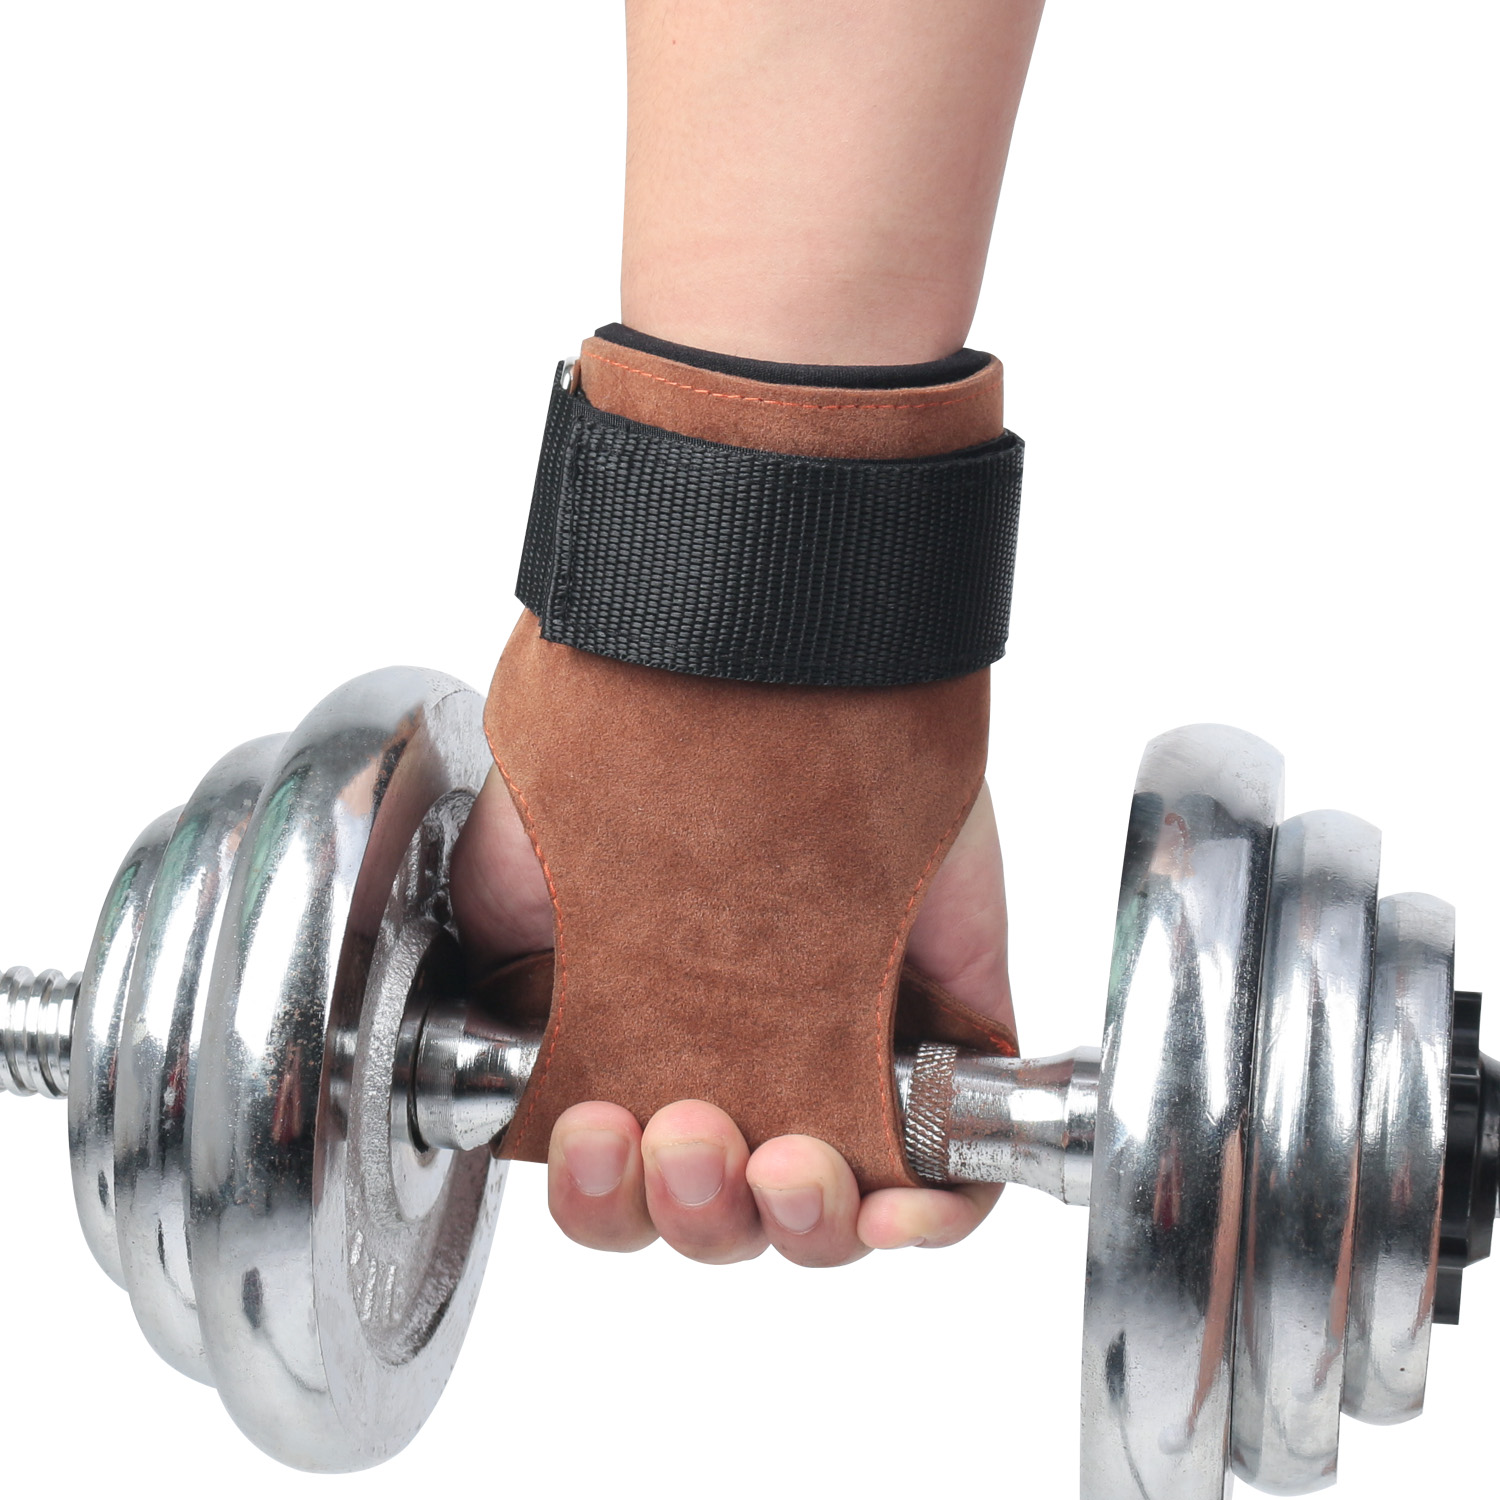 SHIWEI-HS004#Weight Lifting Gloves with Built-In Wrist Wraps Great for Pull Ups Cross Training Palm Support